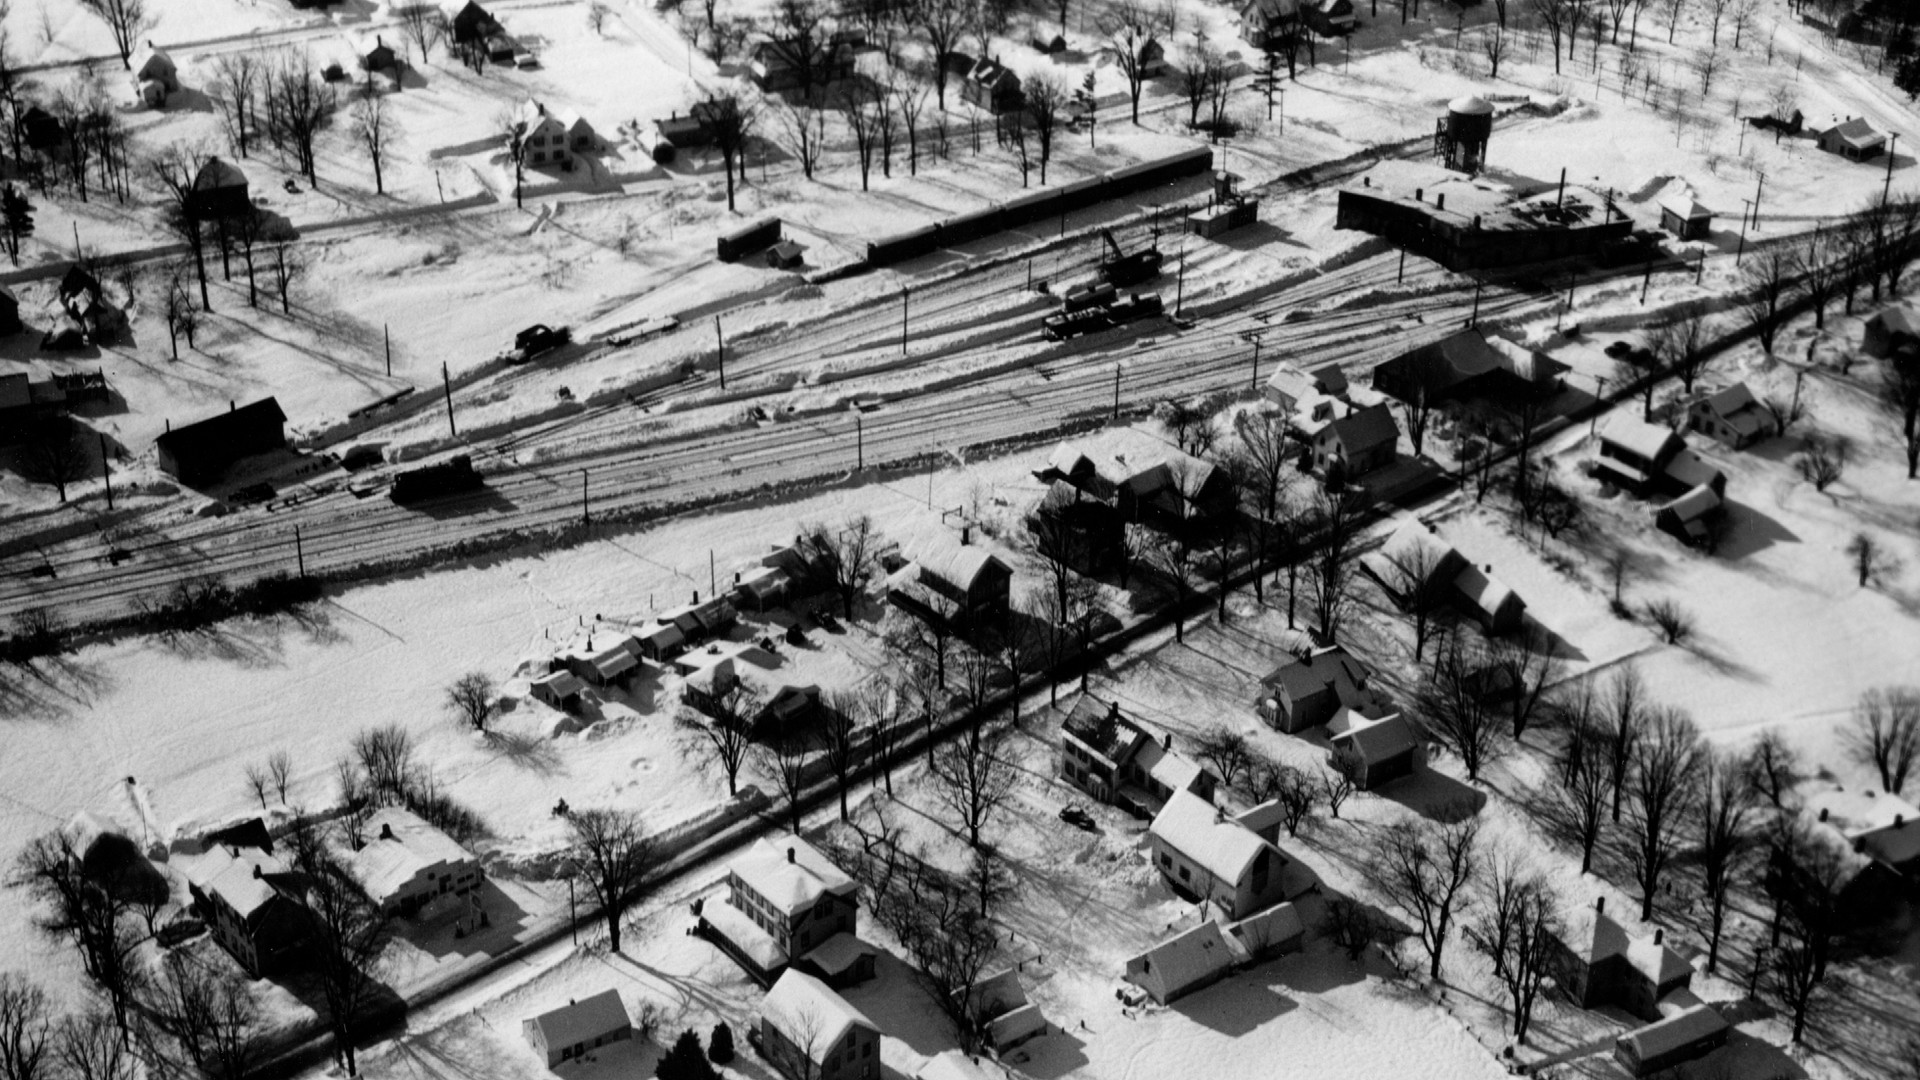 Village Area - Railroad yard